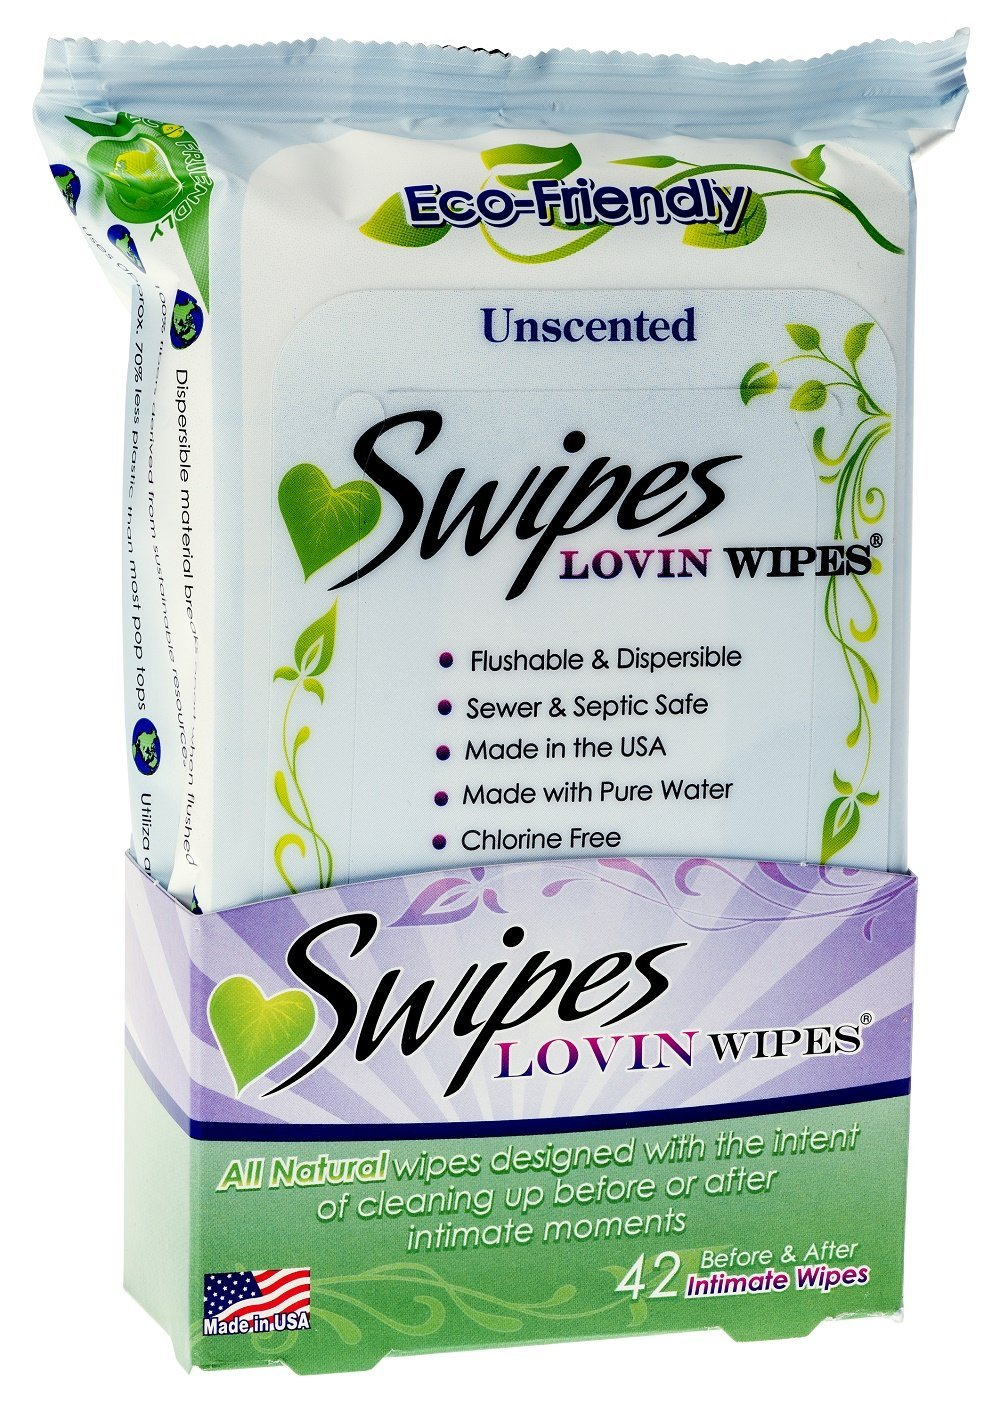 Swipes Lovin All Natural Intimate Wipes, Unscented, 3 Count